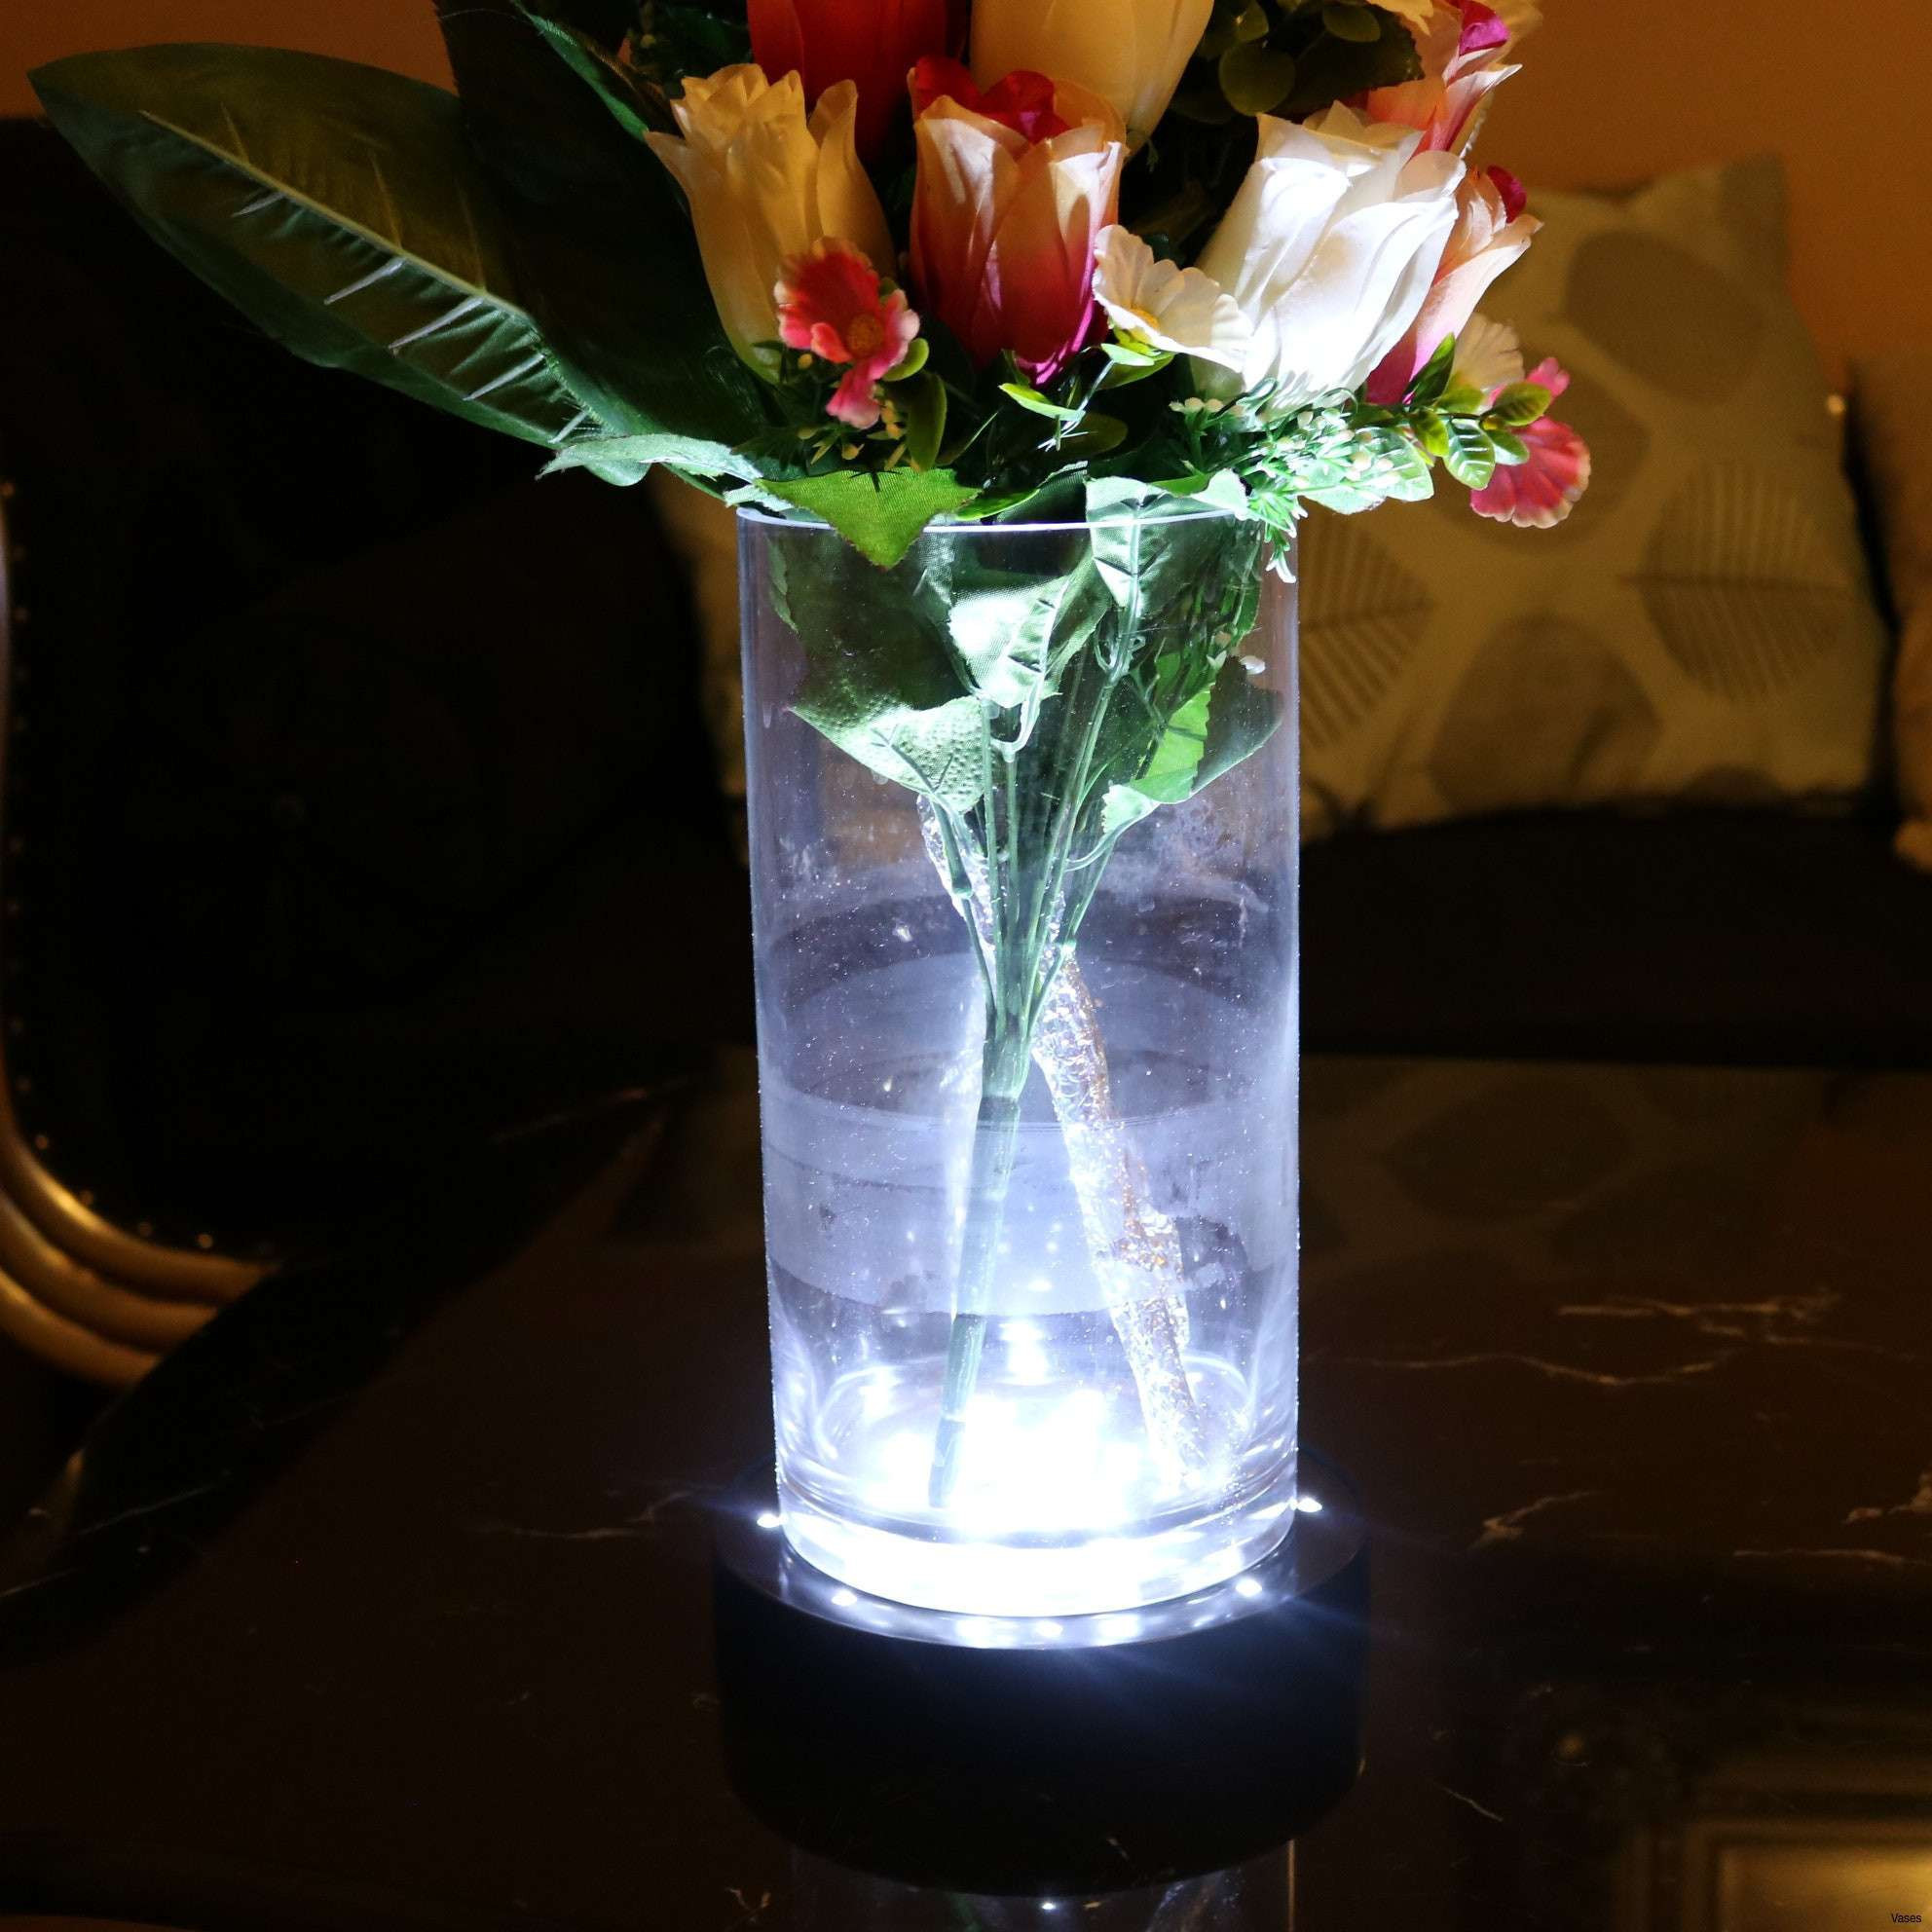 kate spade bud vase of vases artificial plants collection page 43 within glass wall vases for flowers photograph vases disposable plastic single cheap flower rose vasei 0d design of glass wall vases for flowers